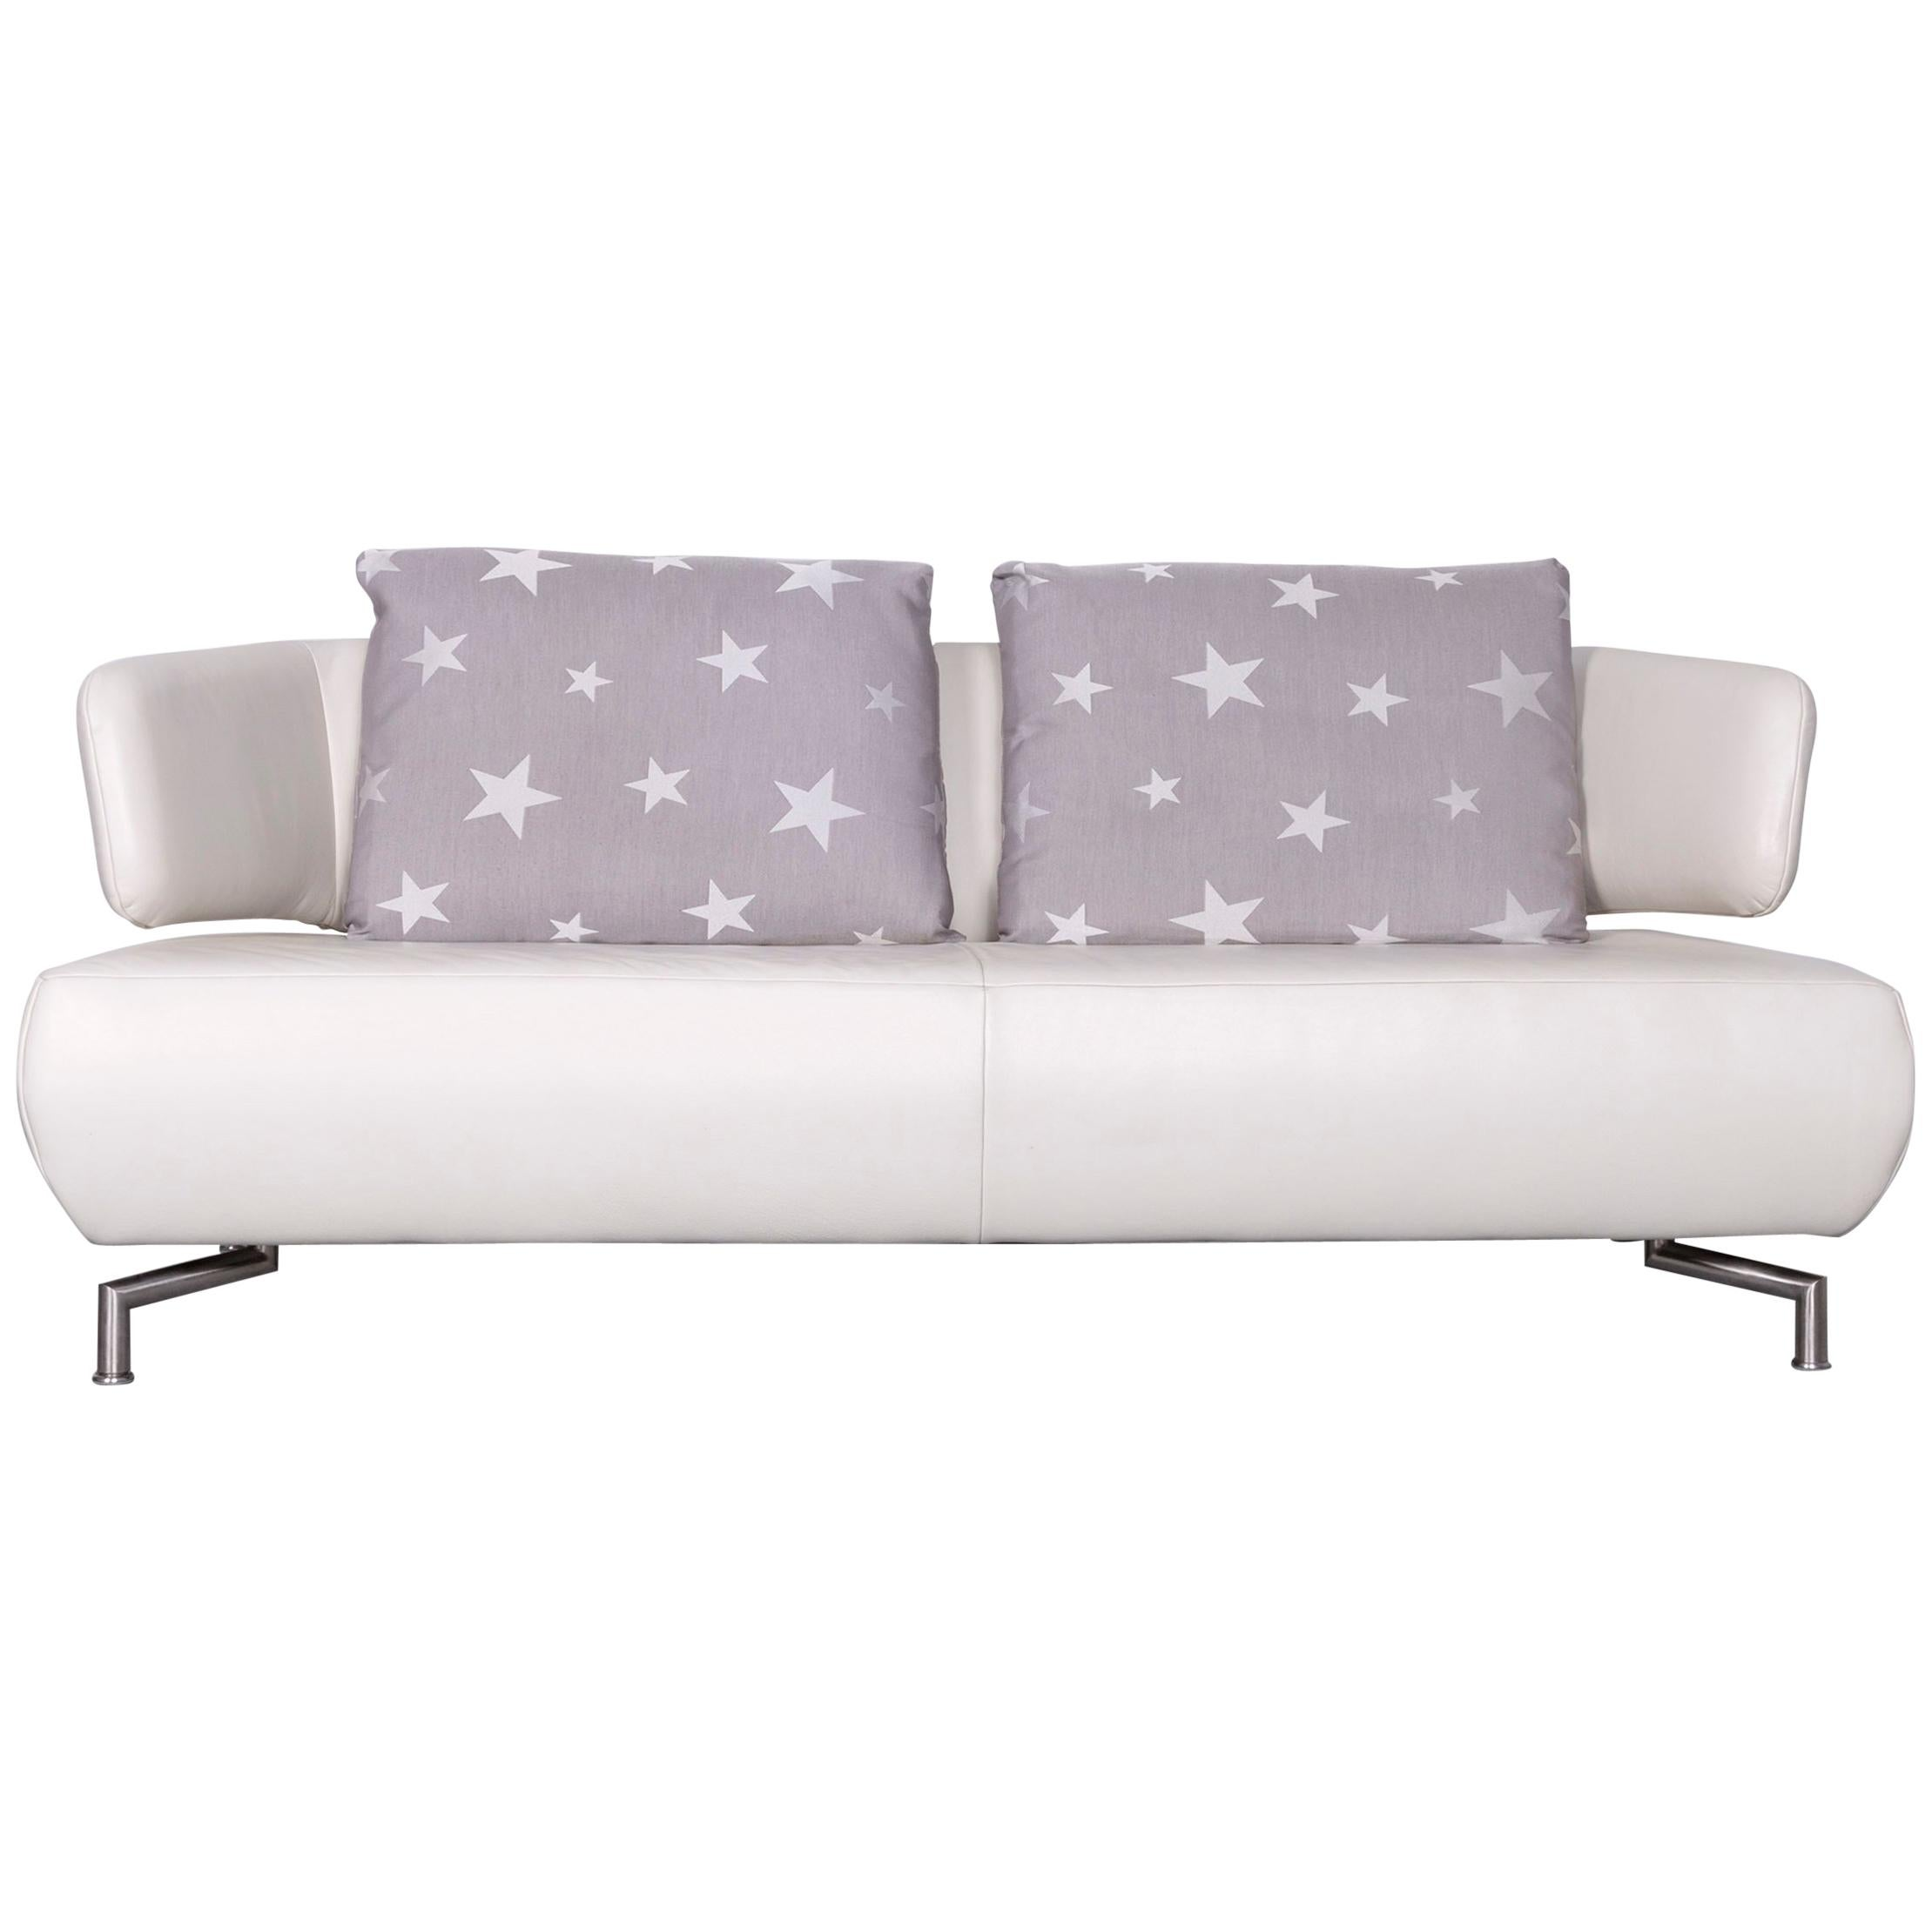 Koinor Designer Two Seat Sofa White Leather Couch With Pillow